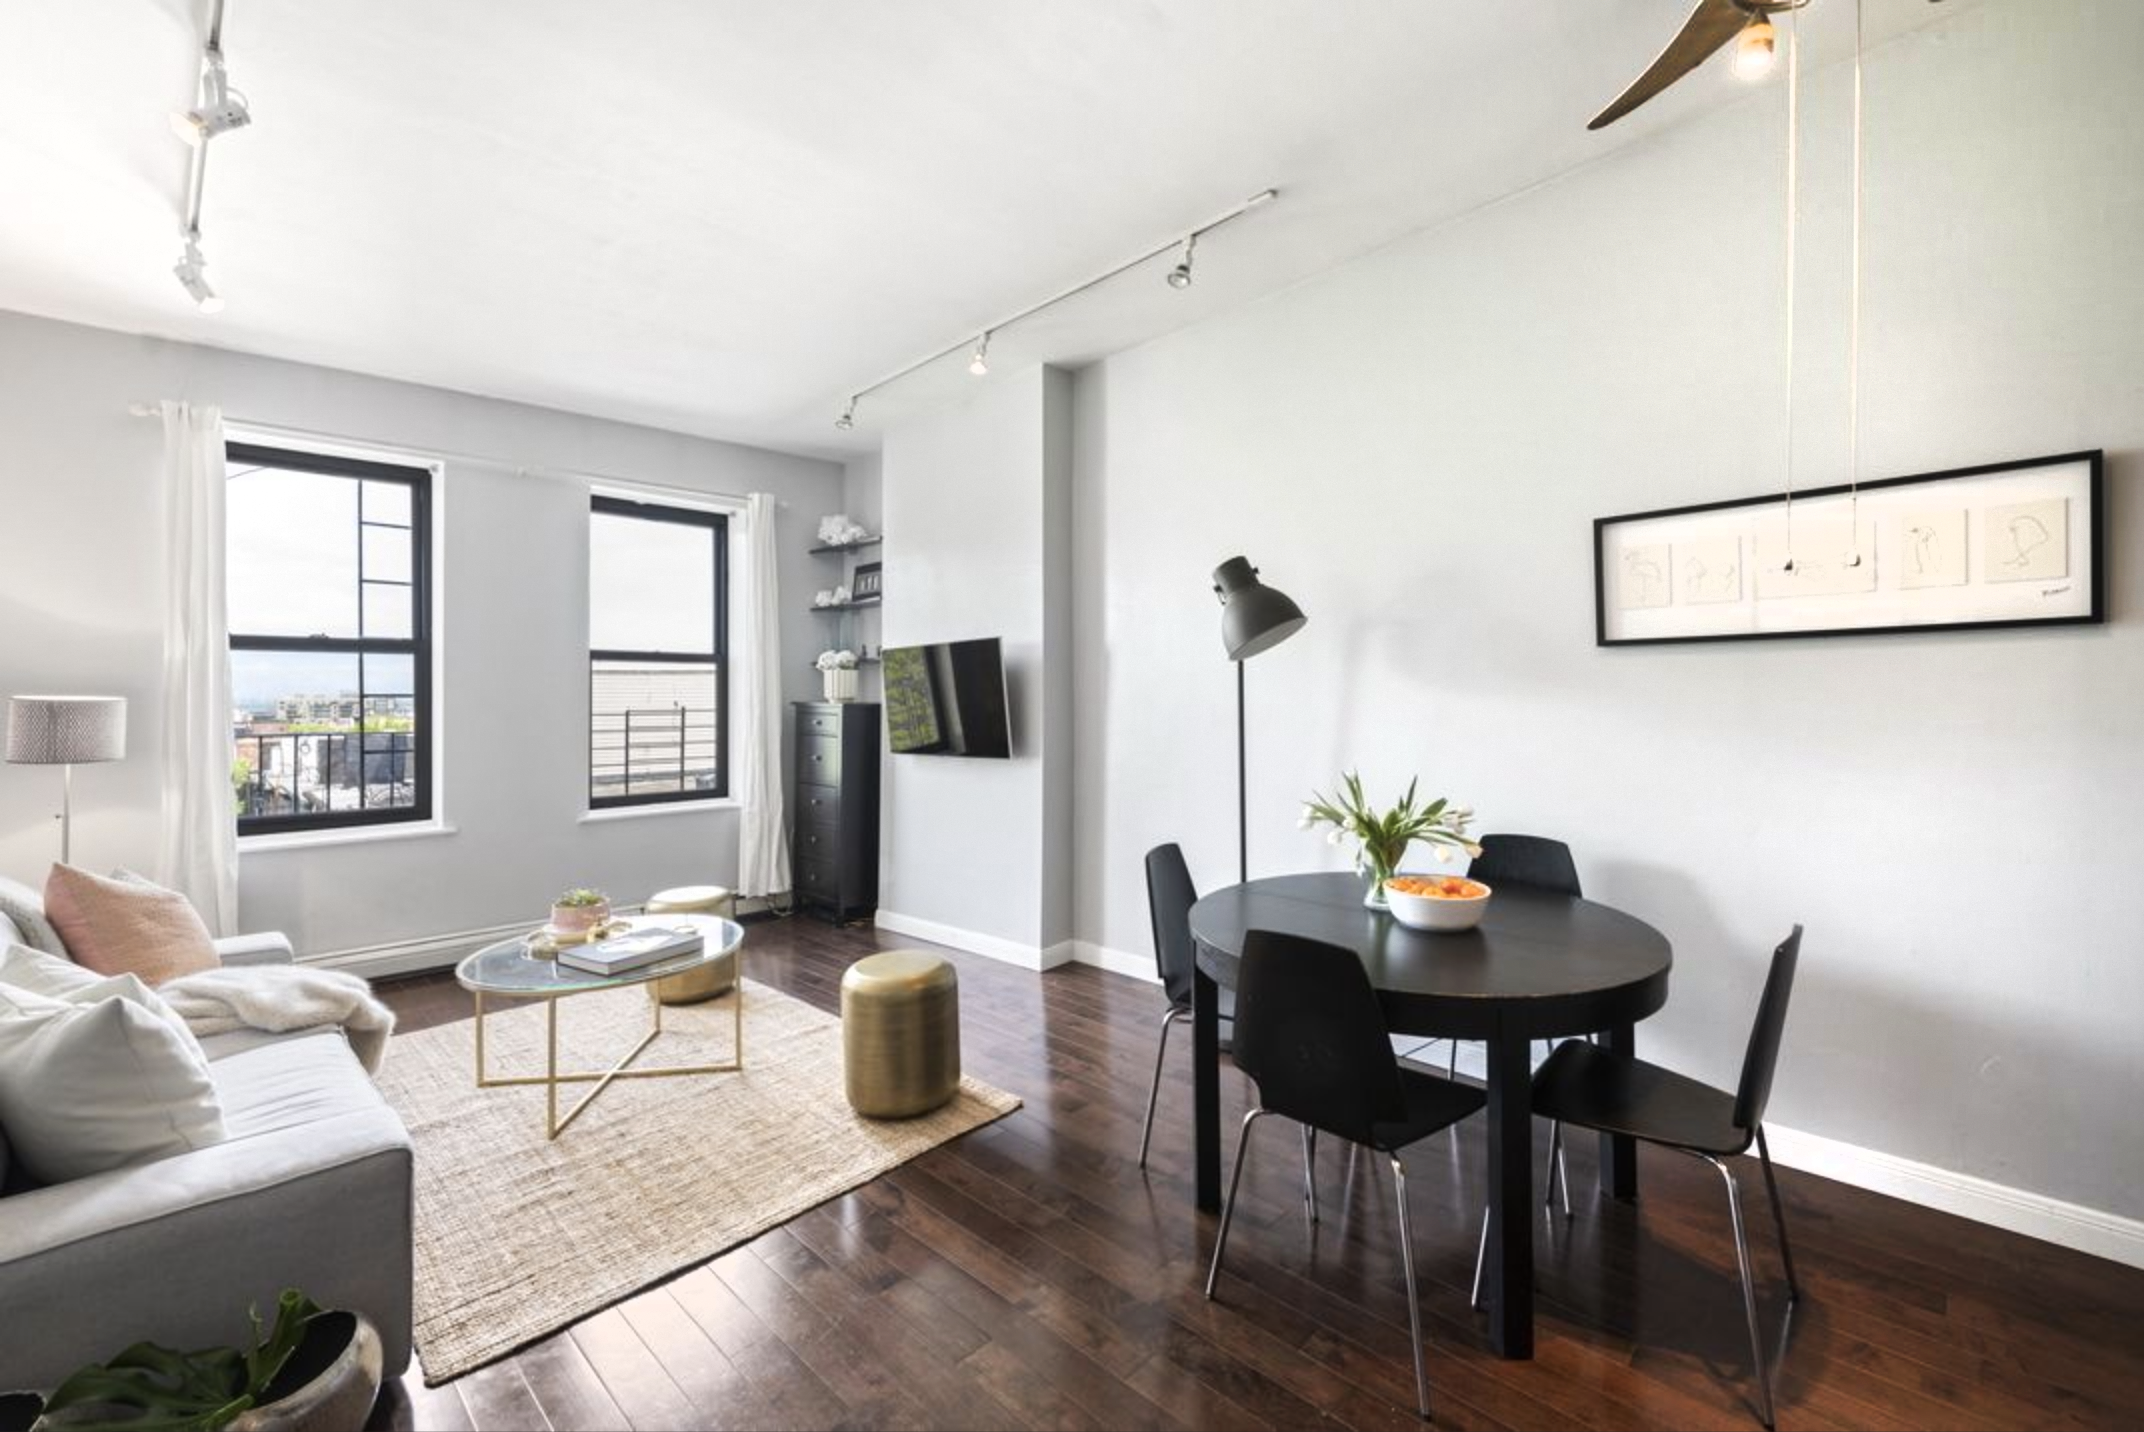 412 Seventh Ave, #4R - Park Slope | Brooklyn    2 Bedroom // 1 Bath Days on Market — 134 Sold Date: November 2018 Sold Price:    $800,000